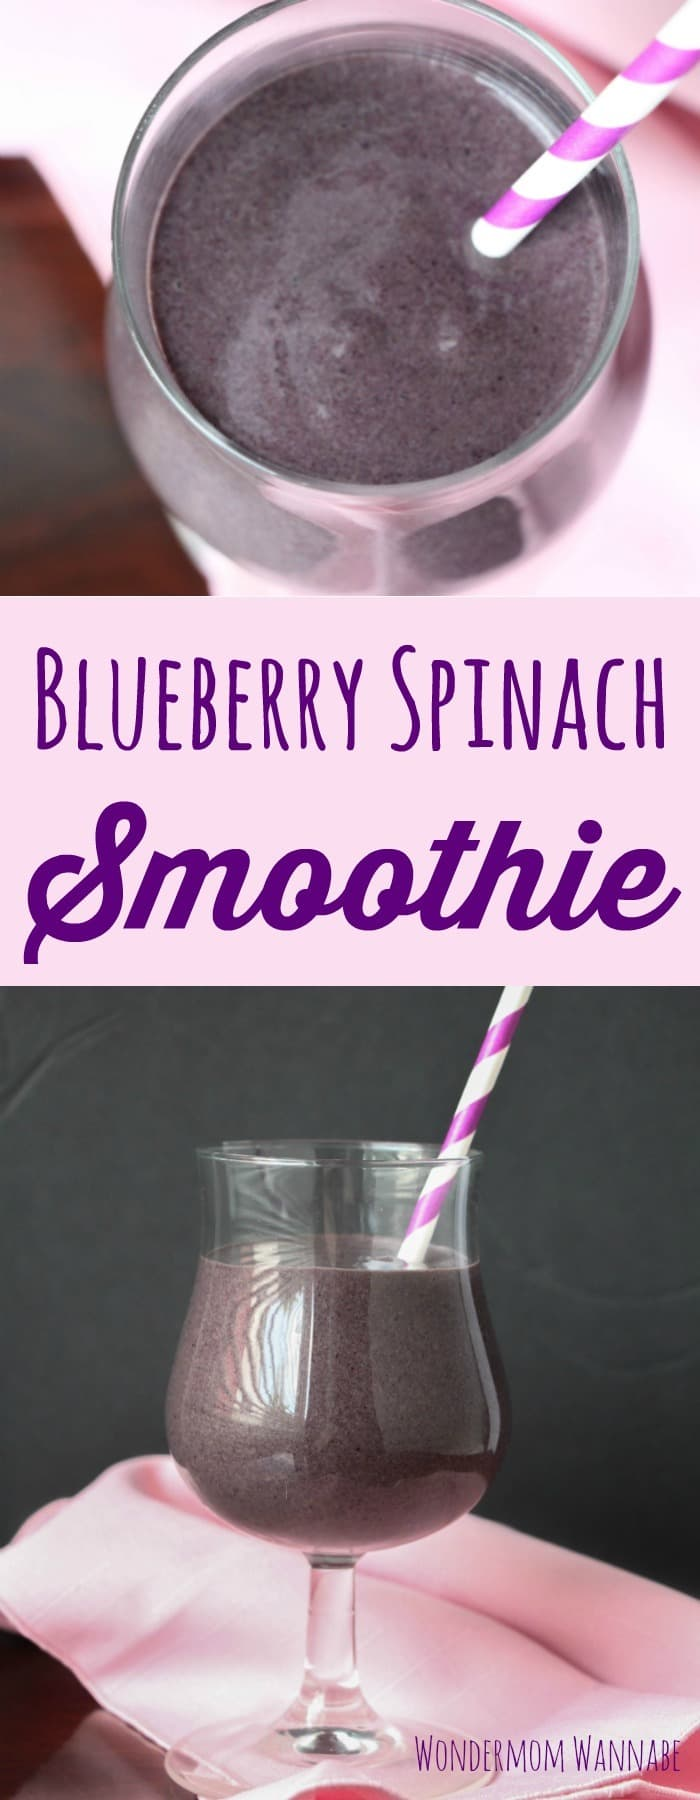 a collage of a blueberry smoothie in a glass with a pink and white striped straw in it on a pink cloth with a dark background with title text reading Blueberry Spinach Smoothie